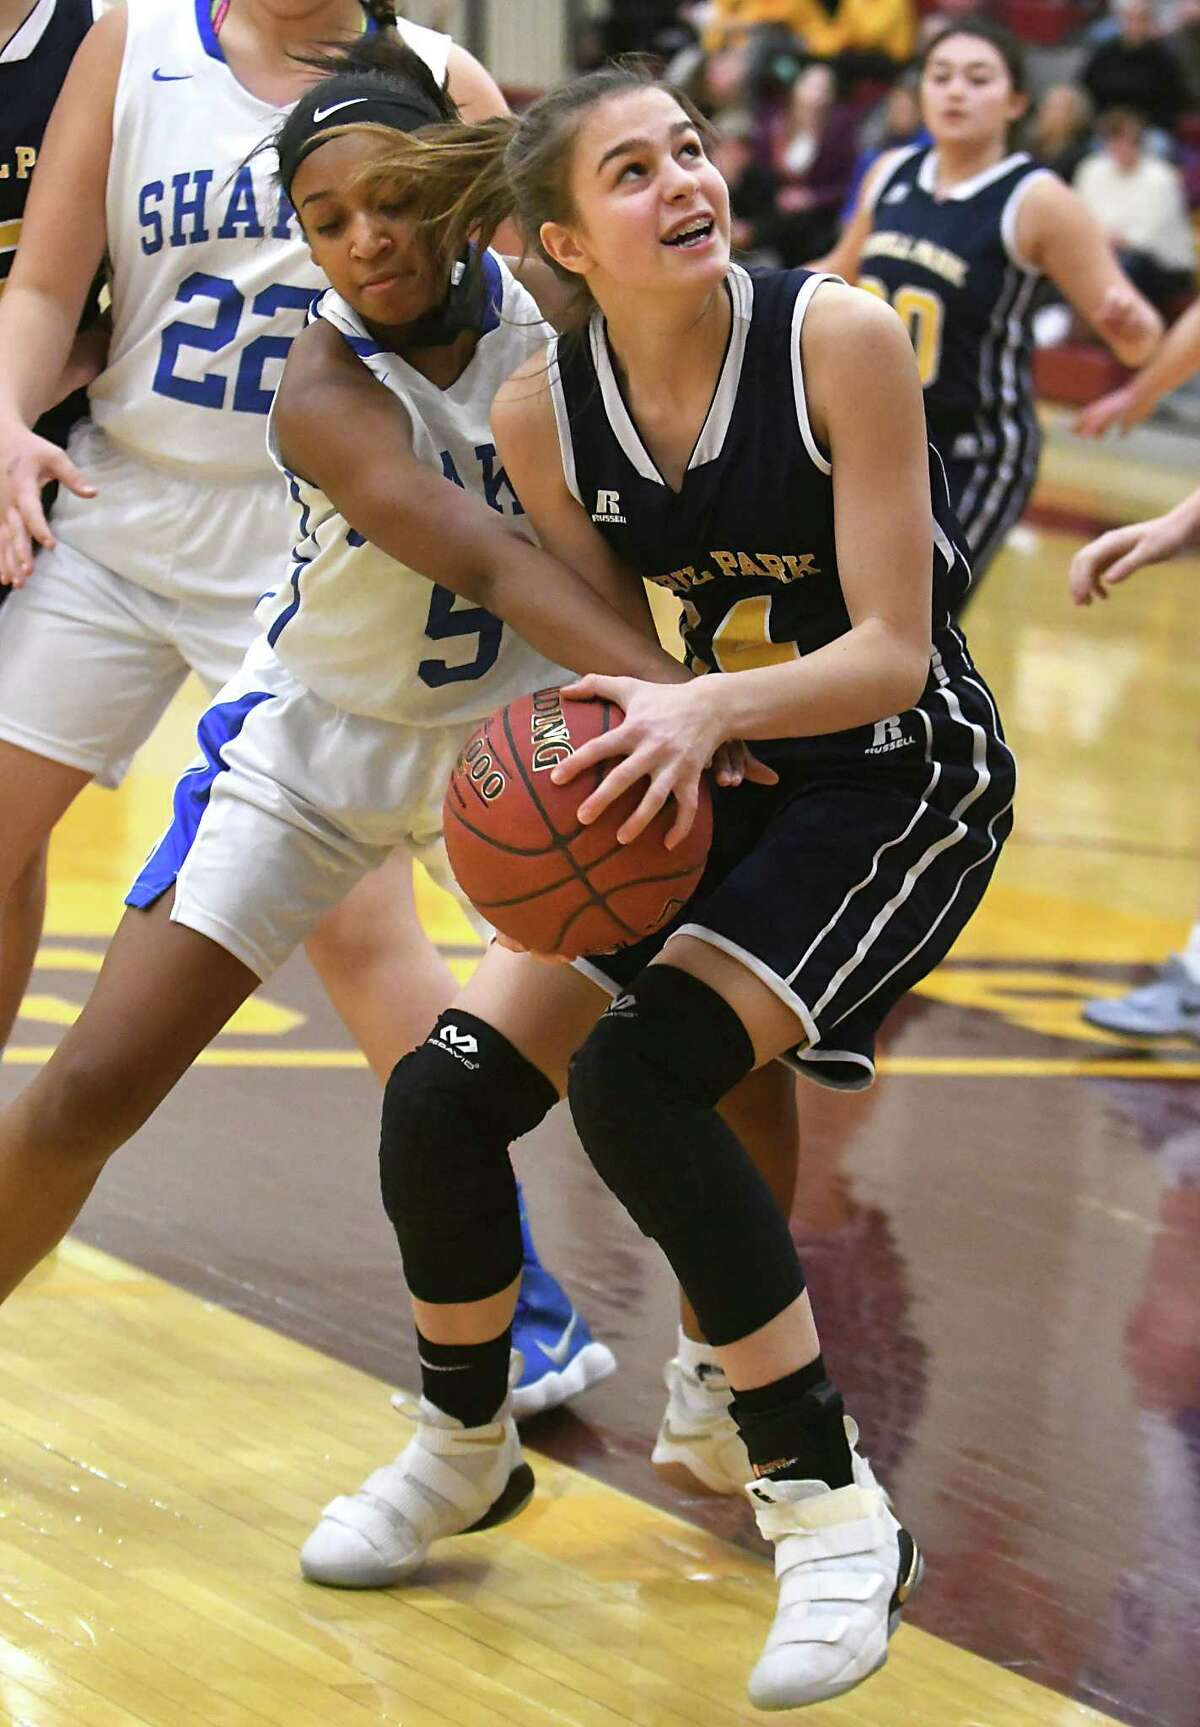 Averill Park's Anna Jankovic goes for the basket guarded by Shaker's Sole Carrington during a basketball game on Wednesday, Dec. 27, 2017 in Colonie, N.Y. (Lori Van Buren / Times Union)